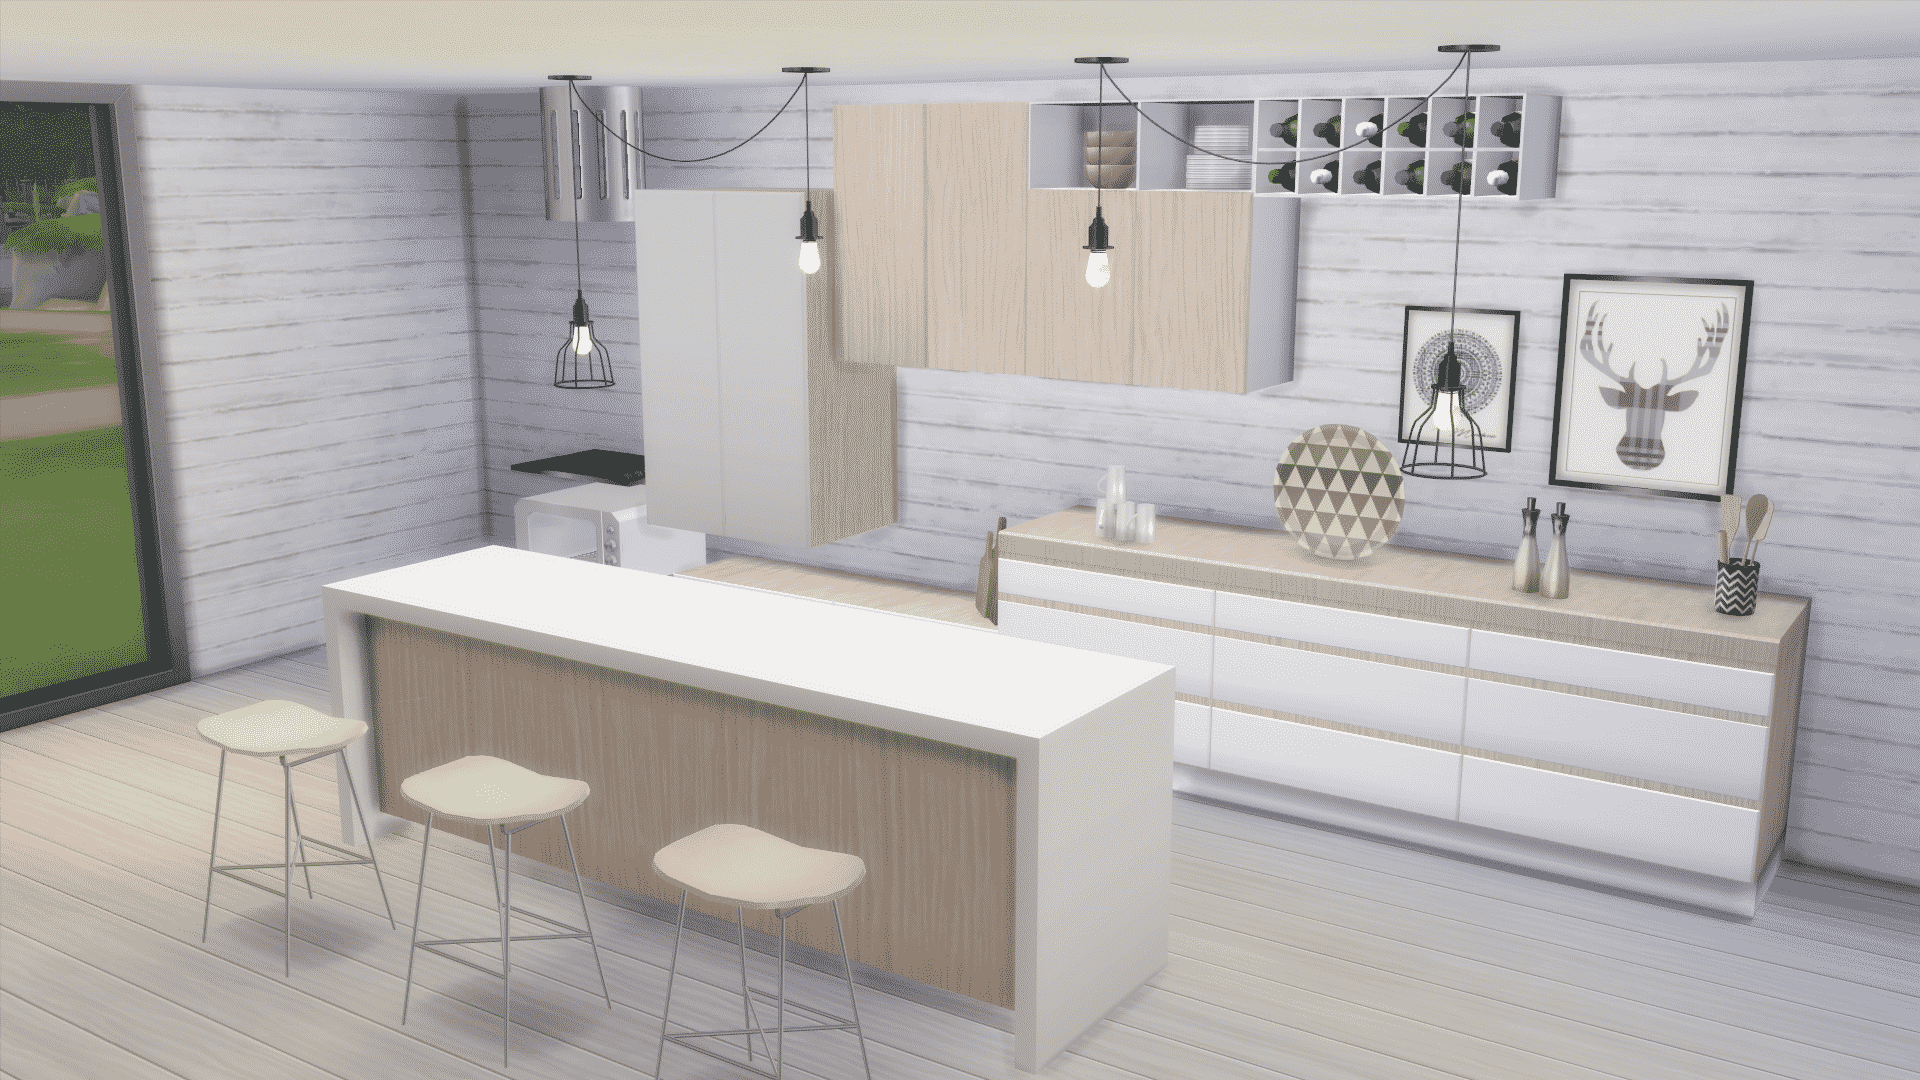 The Sims 4 Custom Content Spotlight Kitchen Sets